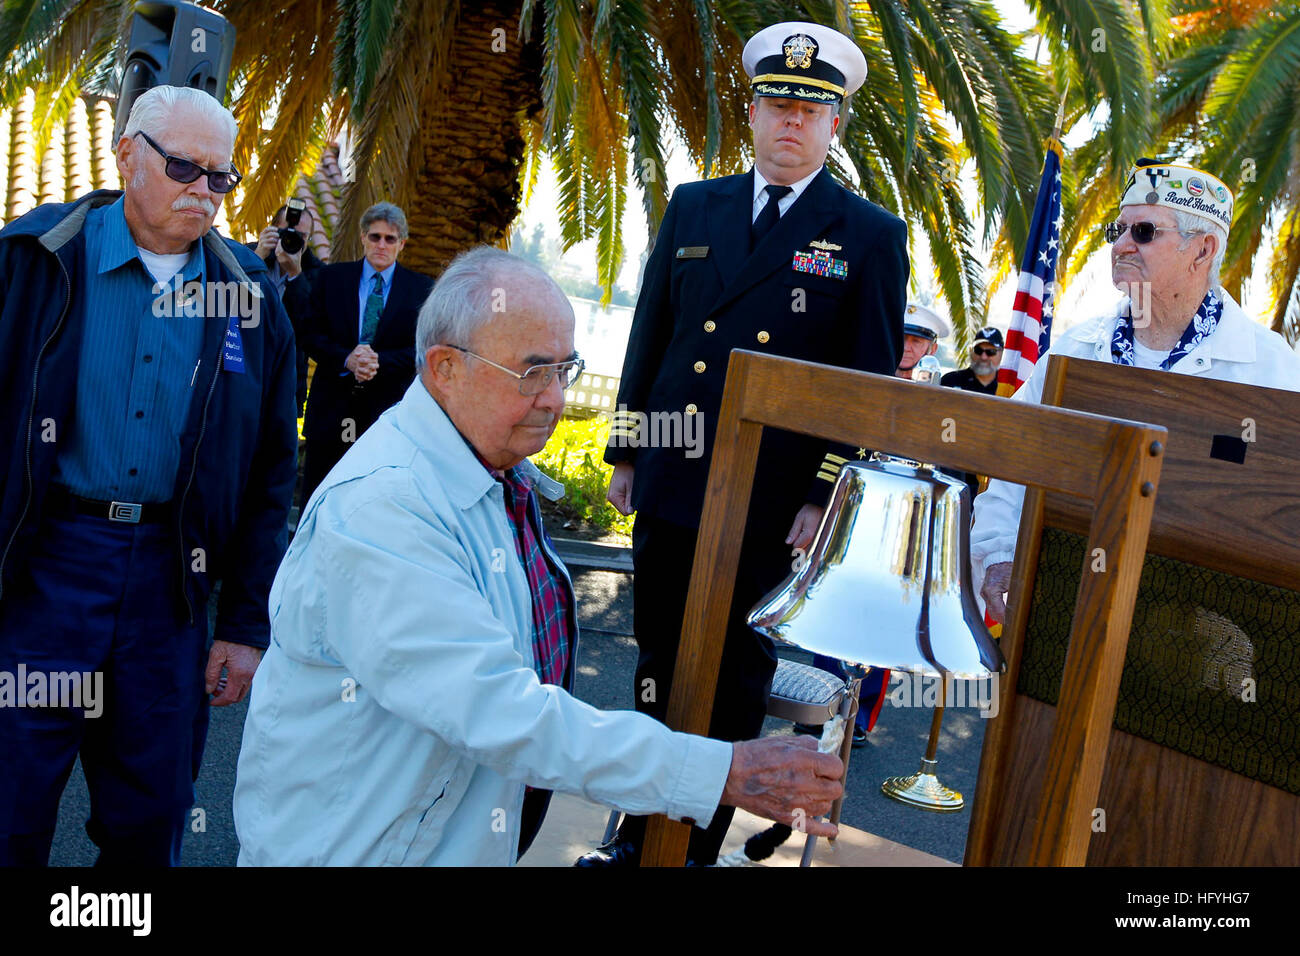 101207-N-8863V-497 NORCO, Calif. (Dec. 7, 2010) Roger Marron, 90, center, rings a bell at Naval Surface Warfare - Stock Image